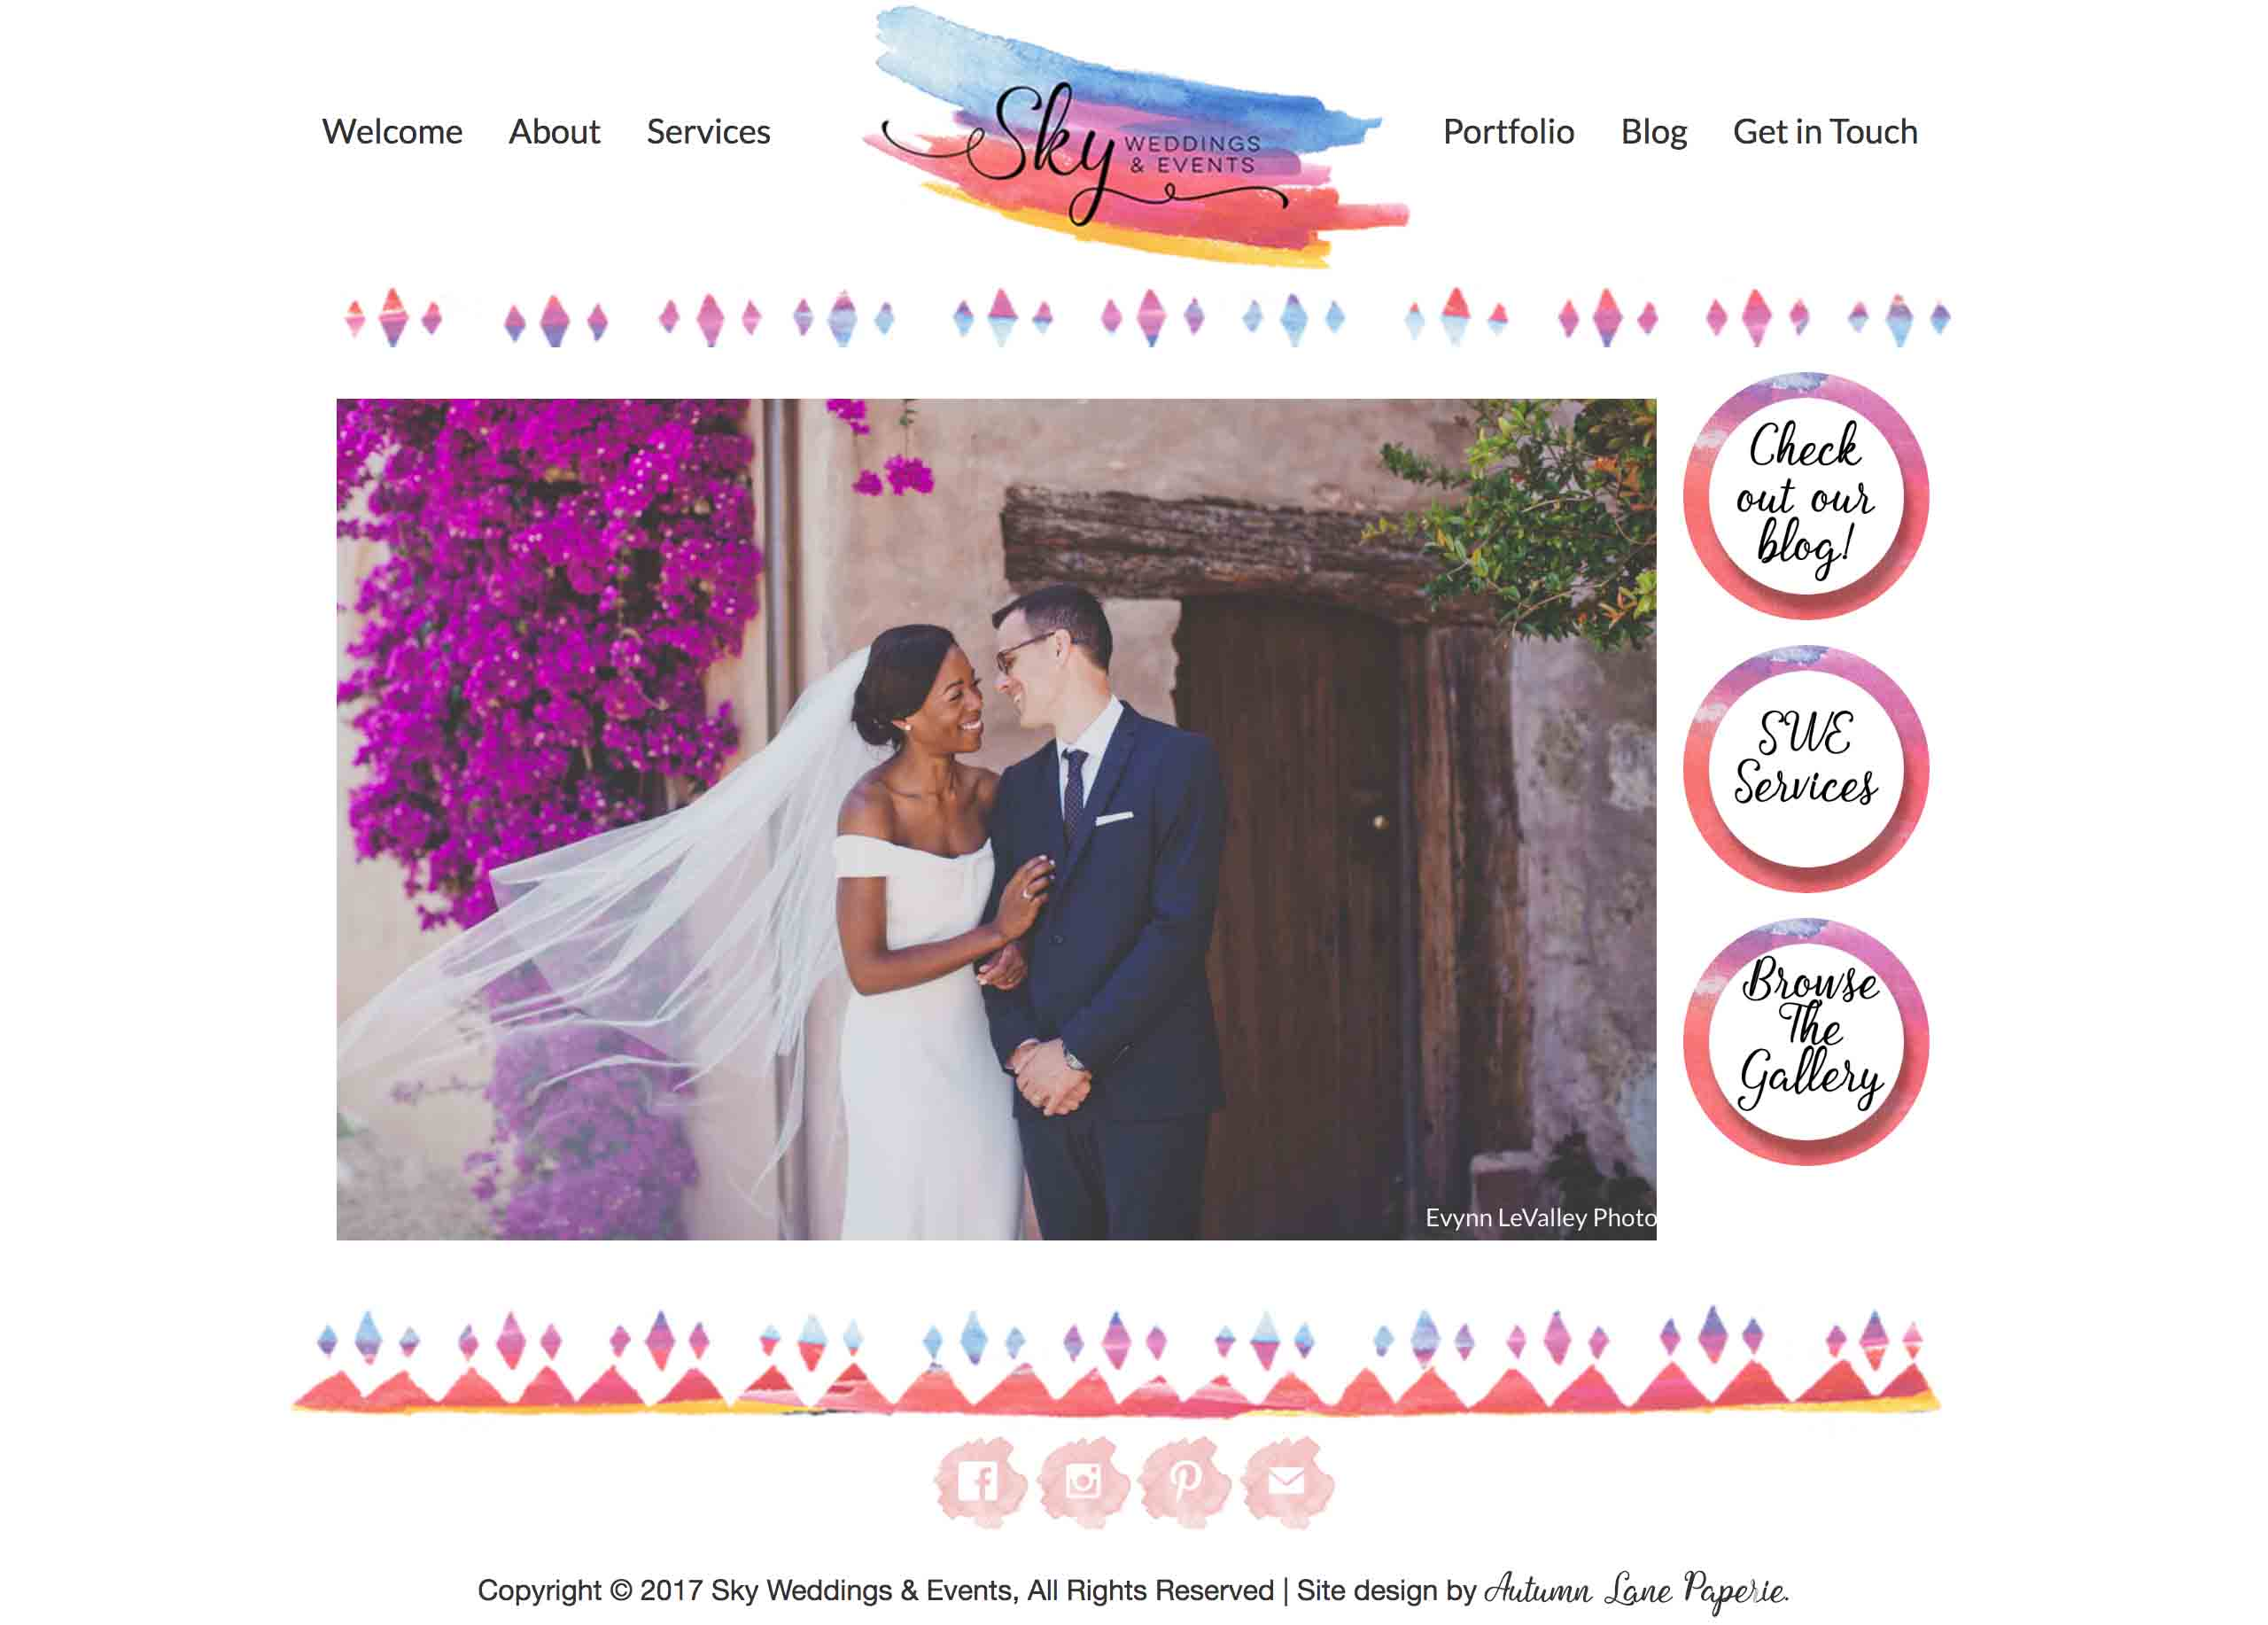 Sky Weddings & Events